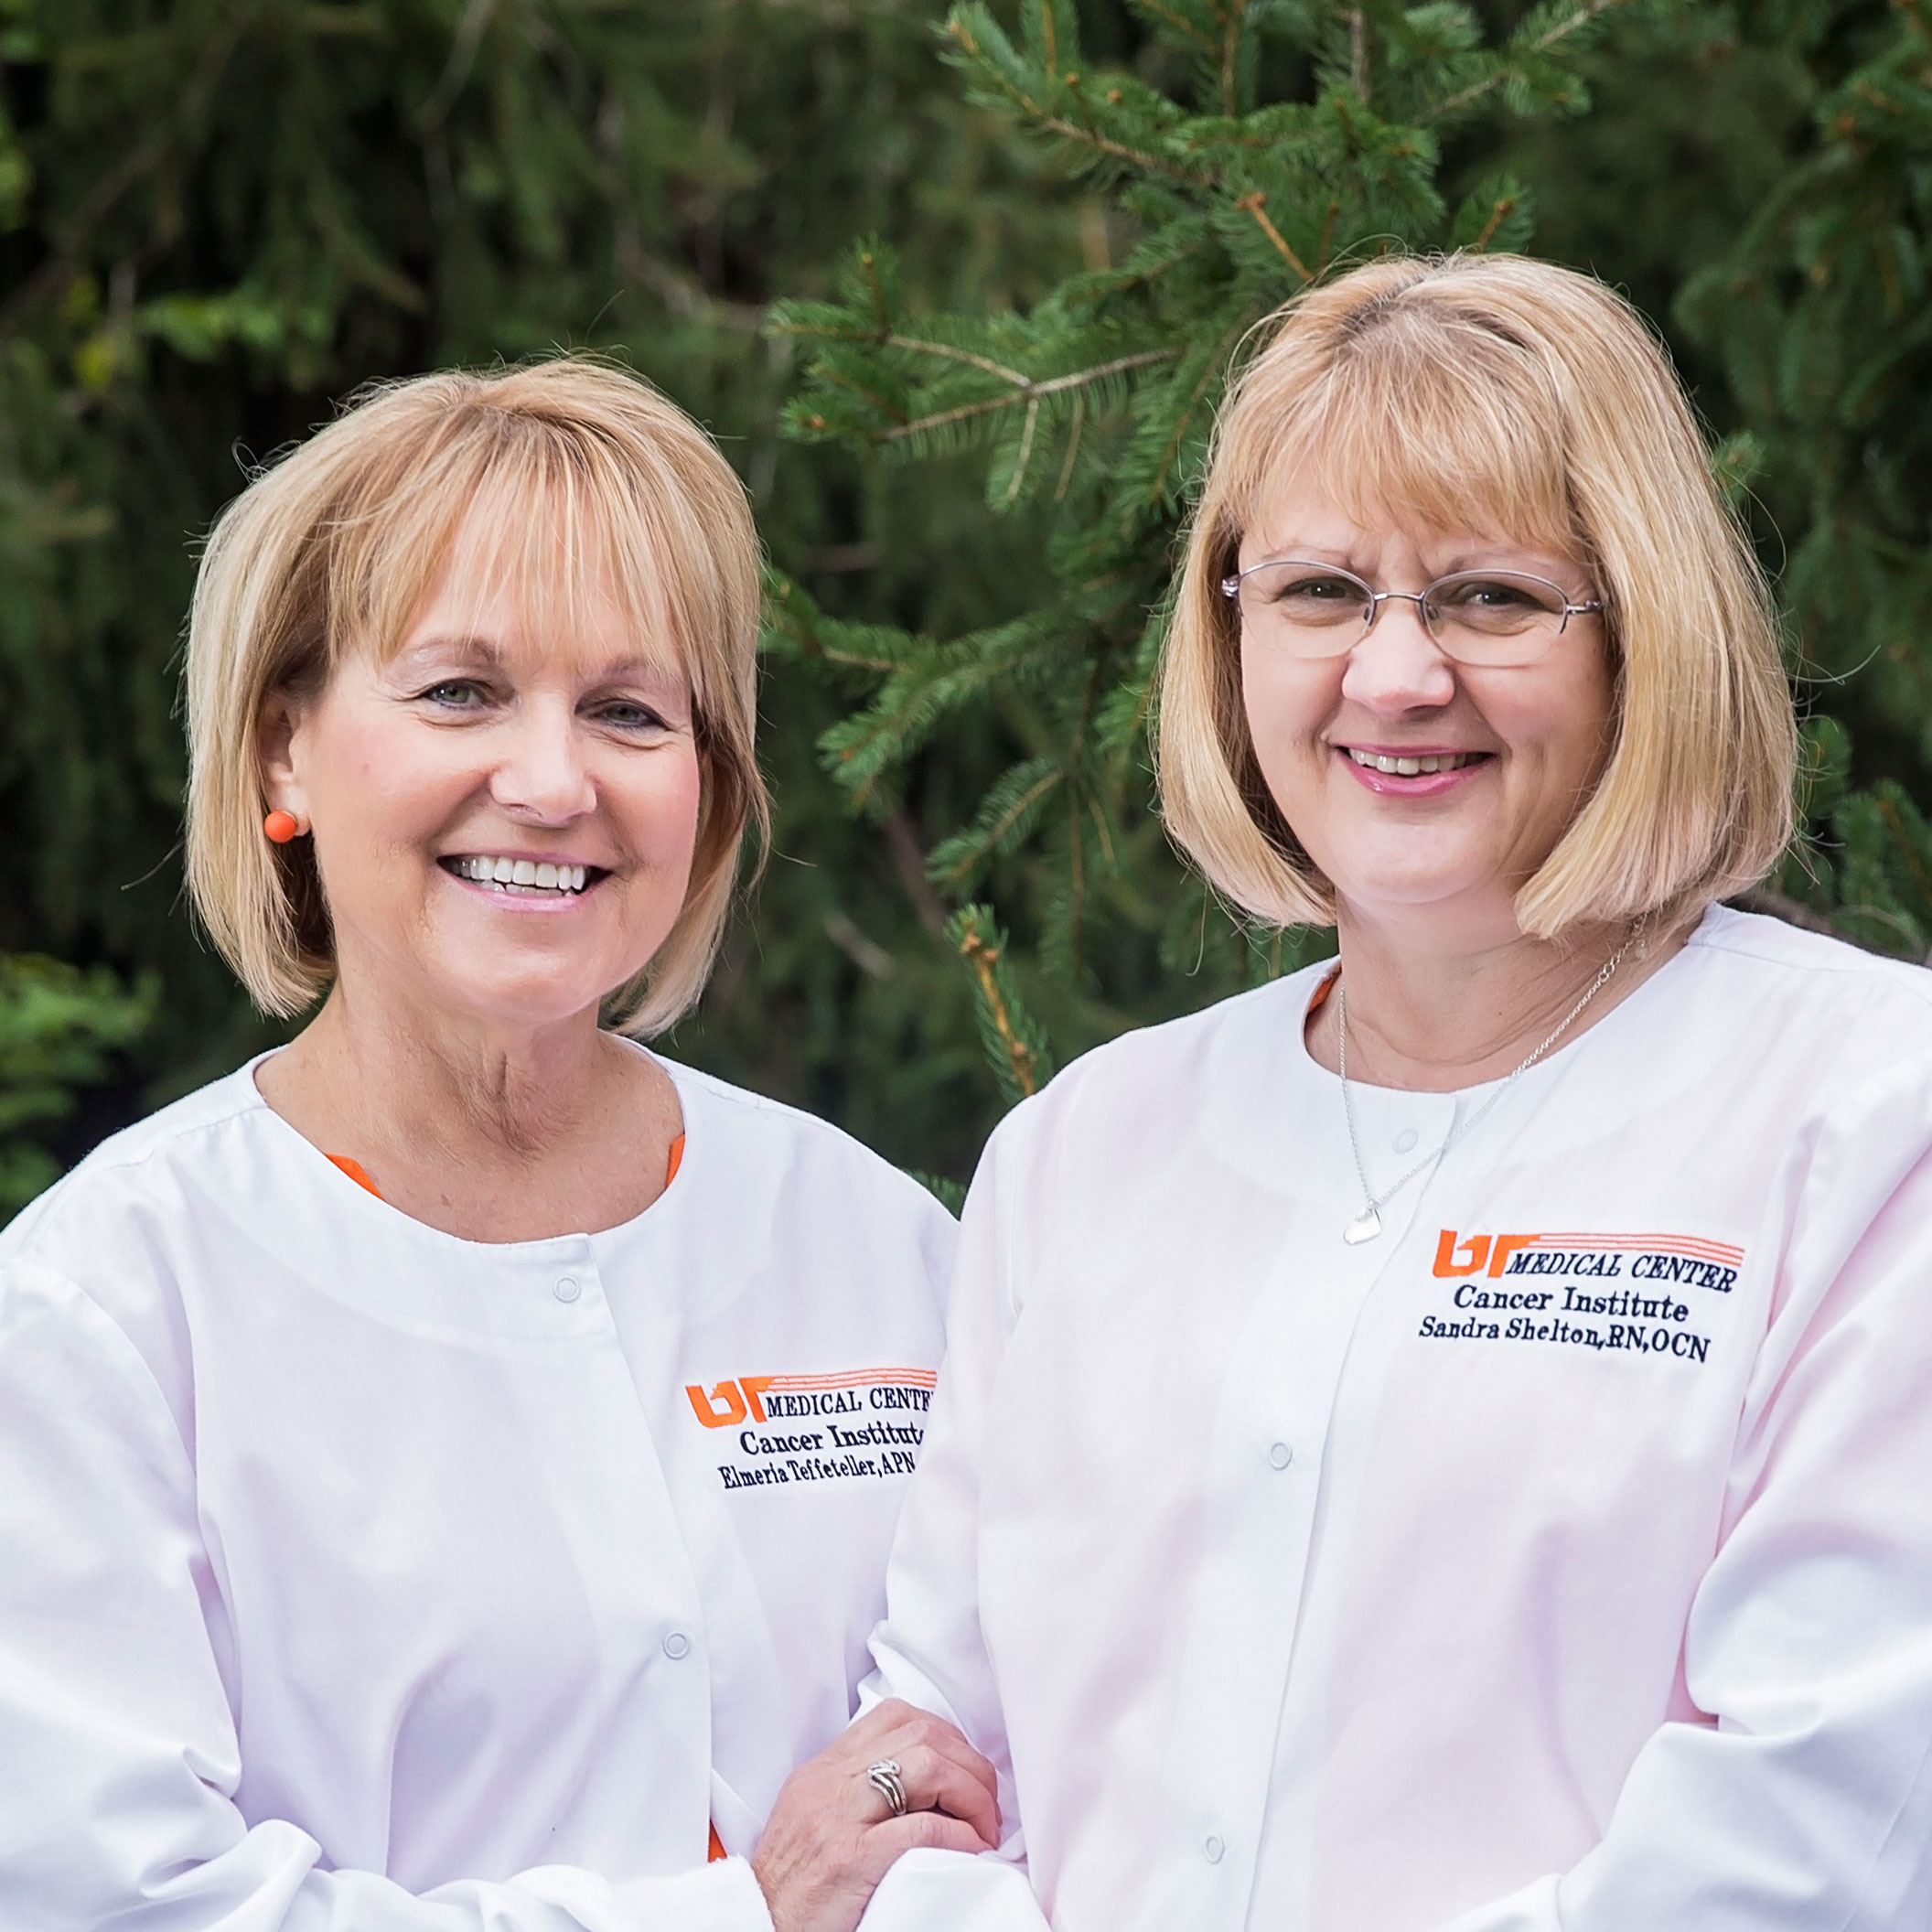 Inspiring Others to Make a Difference in the Life of Someone With Cancer